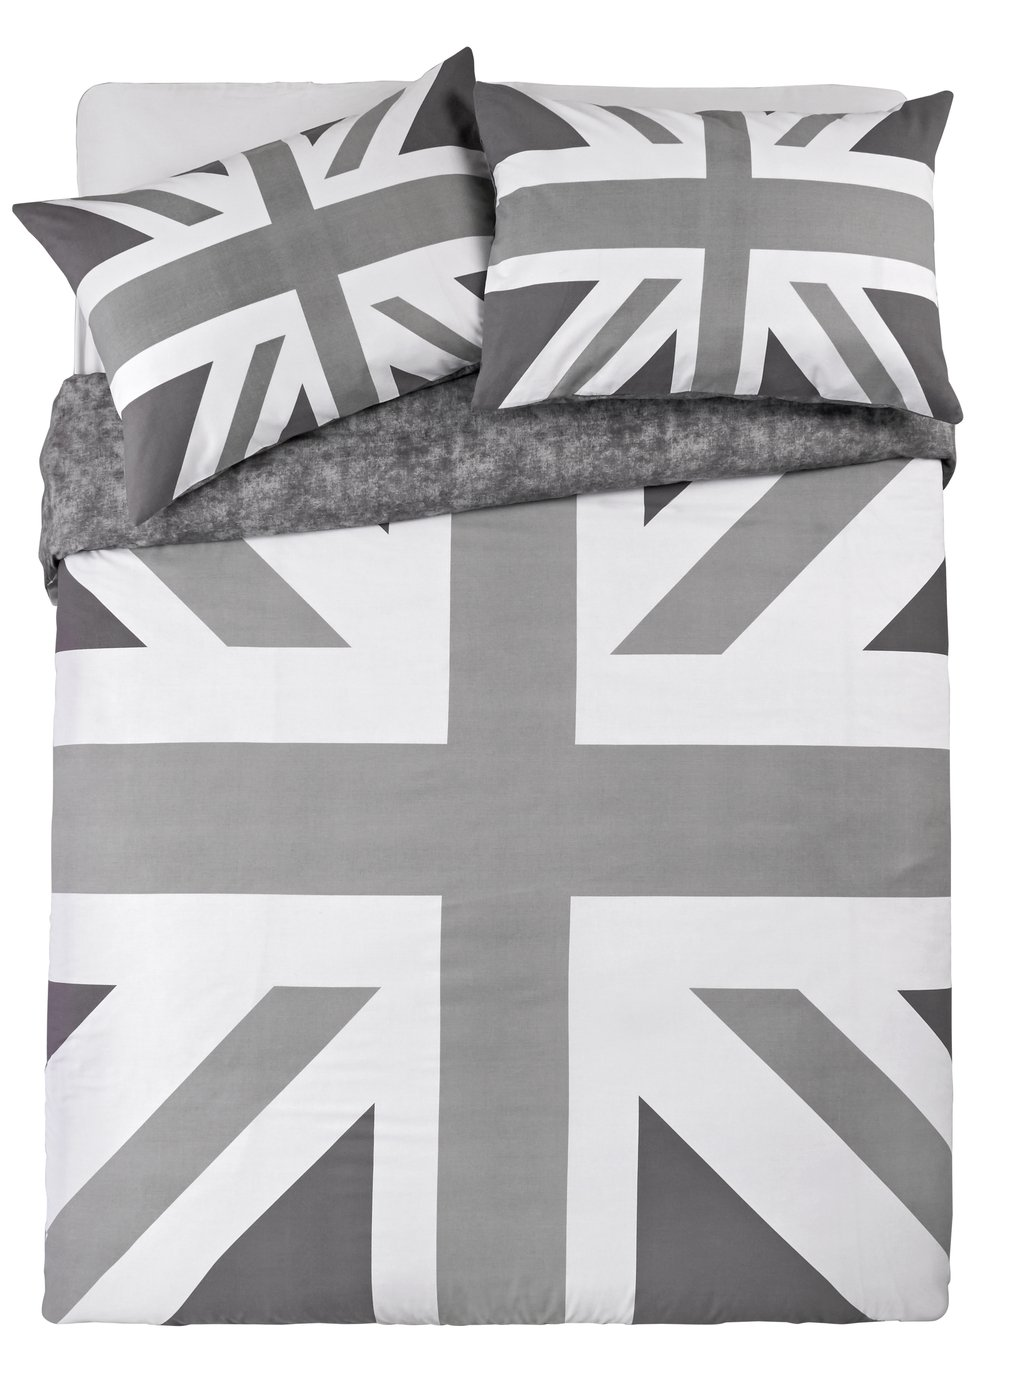 Argos Home Union Jack Bedding Set - Kingsize